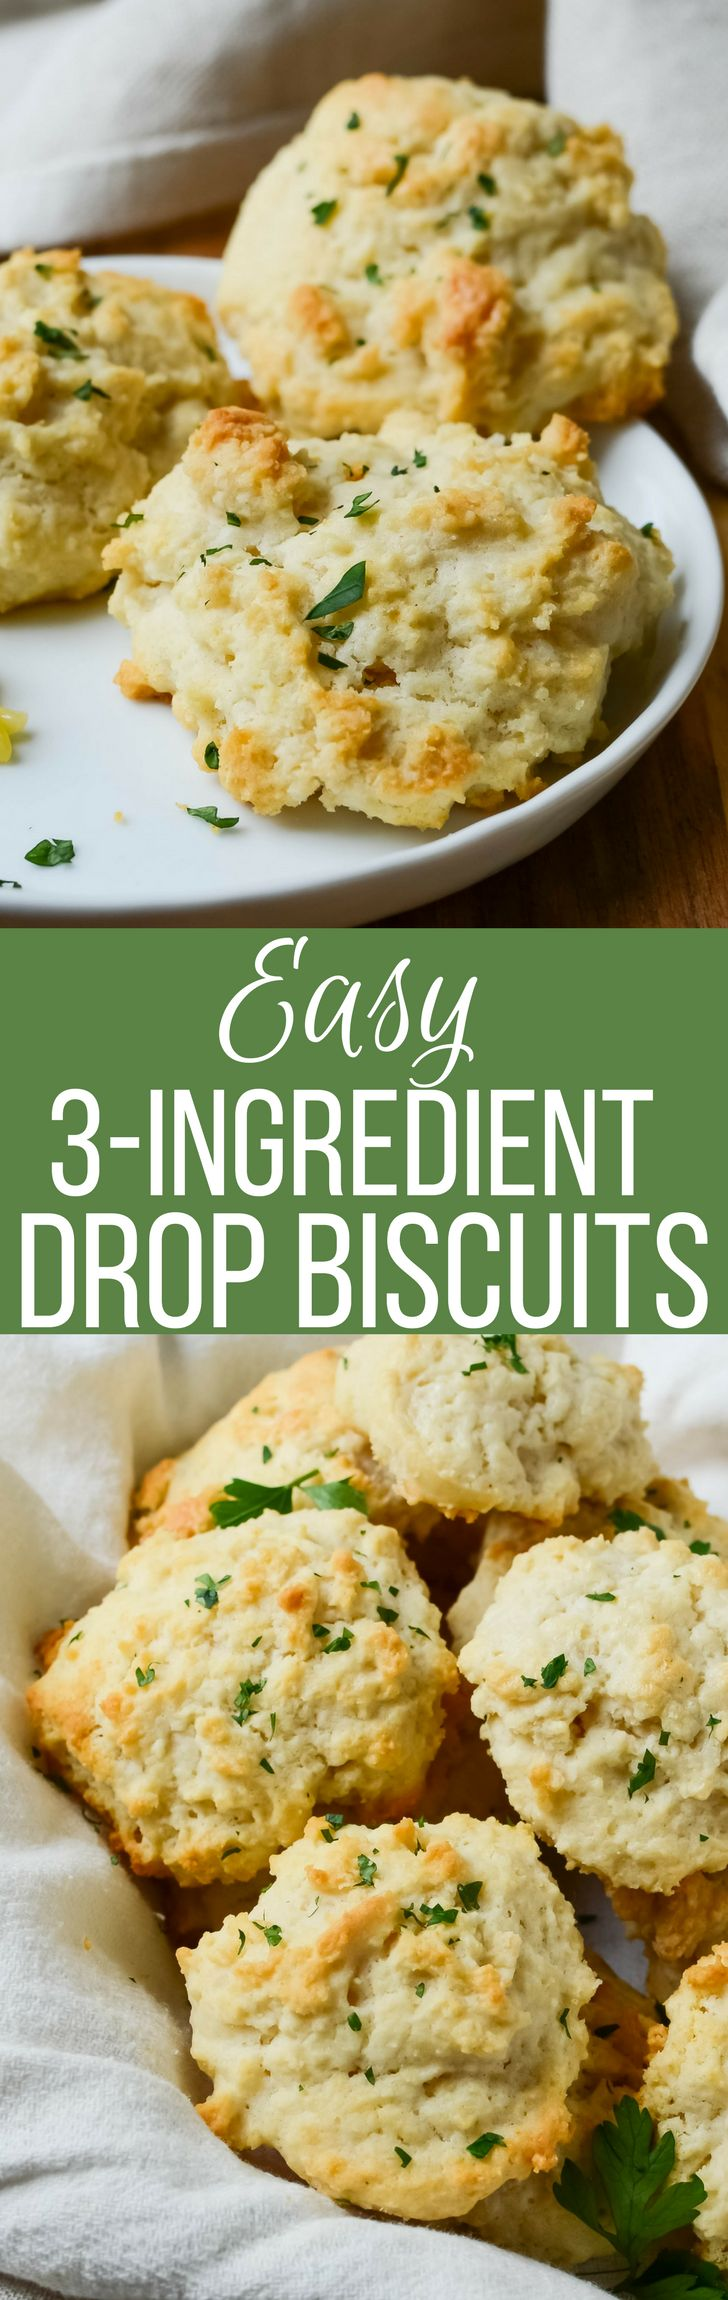 This quick and easy biscuit recipe with only 3 ingredients, is one you'll make again and again! The best homemade drop biscuits!